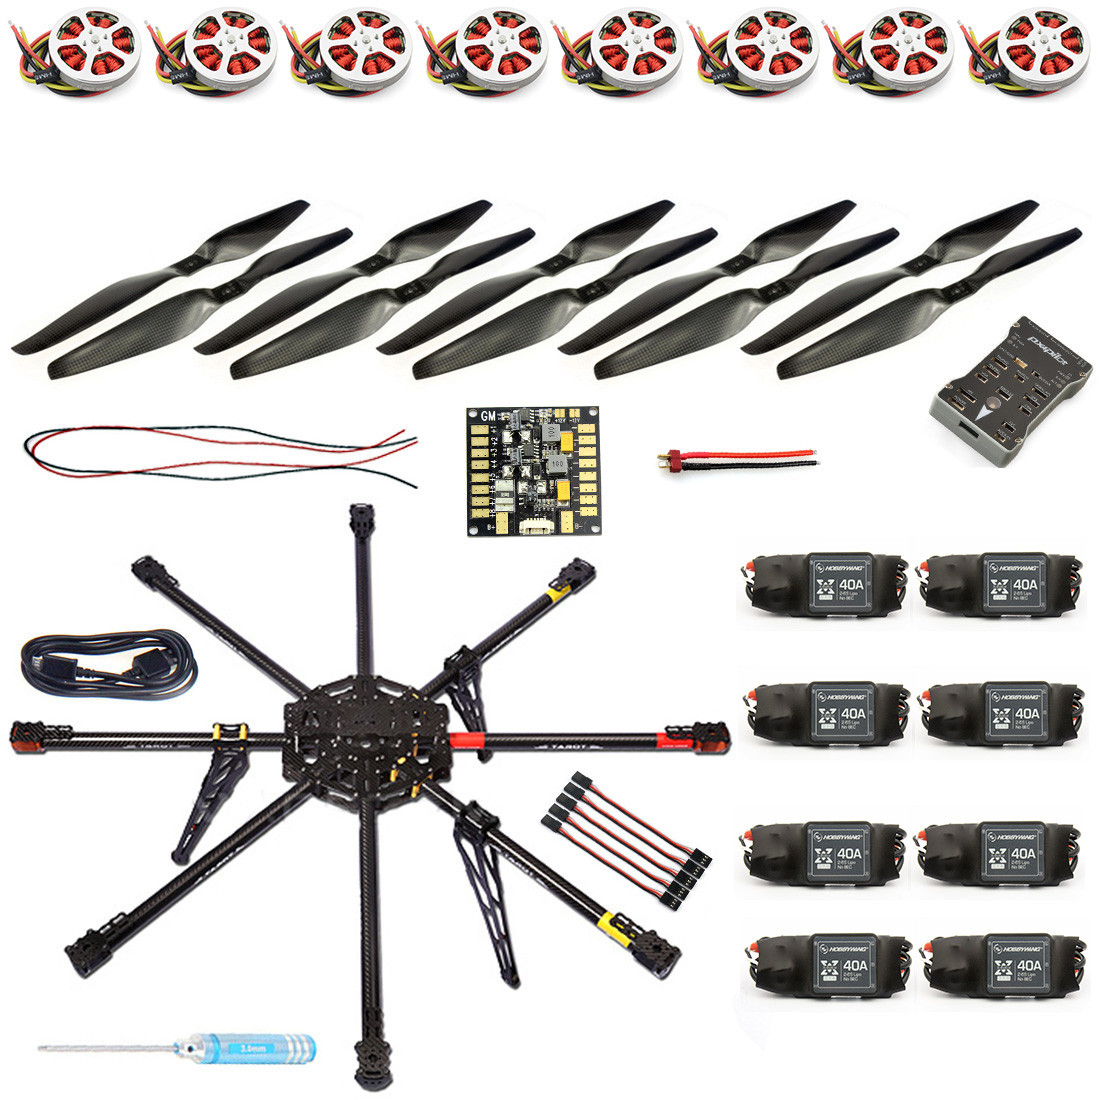 F04765-B DIY 8-Axle Unassembled RC Drone 1000mm Carbon Octocopter PX4 PIX M8N GPS RC Drone PNF Kit No Remote Battery FPV